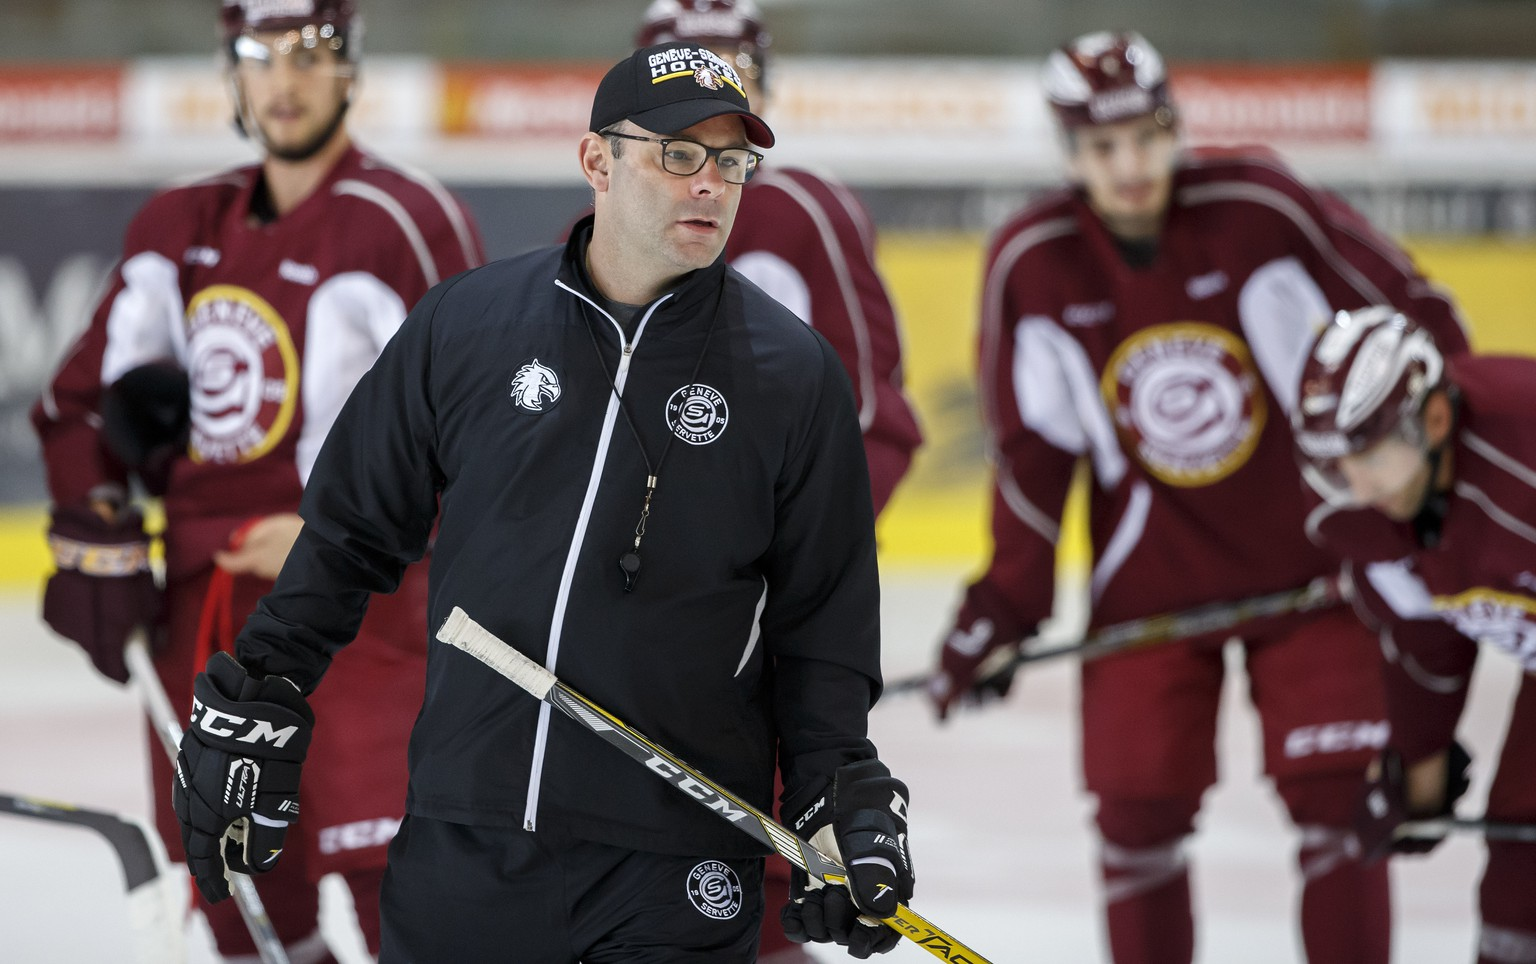 Geneve-Servette's Head coach Craig Woodcroft instructs his players, during a training session of Geneve-Servette HC, at the ice stadium Les Vernets, in Geneva, Switzerland, Wednesday, September 6, 2017. (KEYSTONE/Salvatore Di Nolfi)